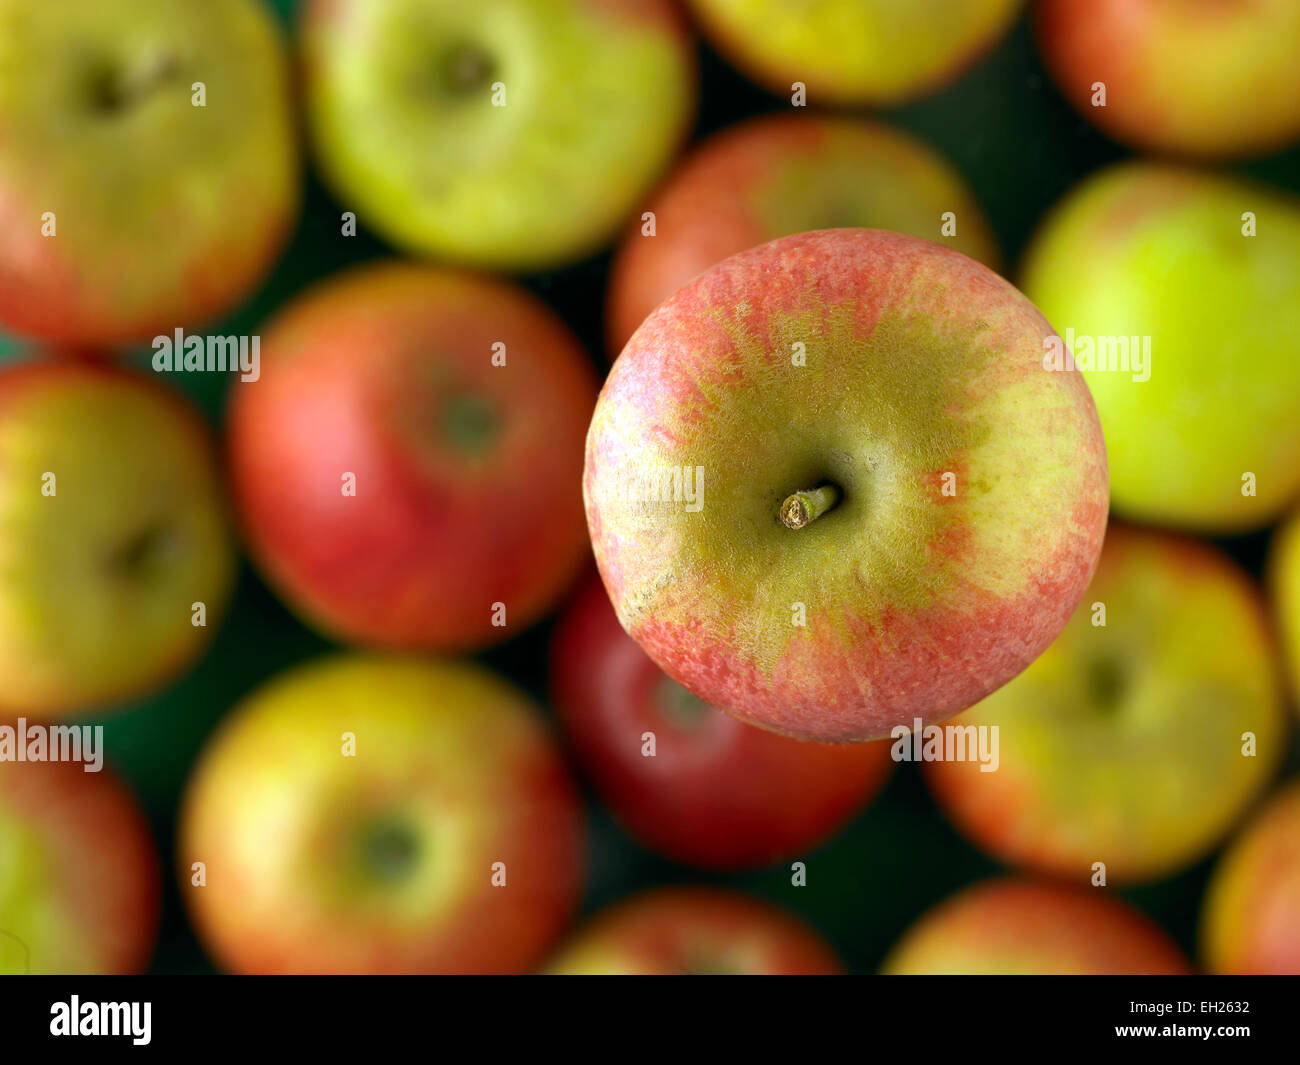 English apples - Stock Image